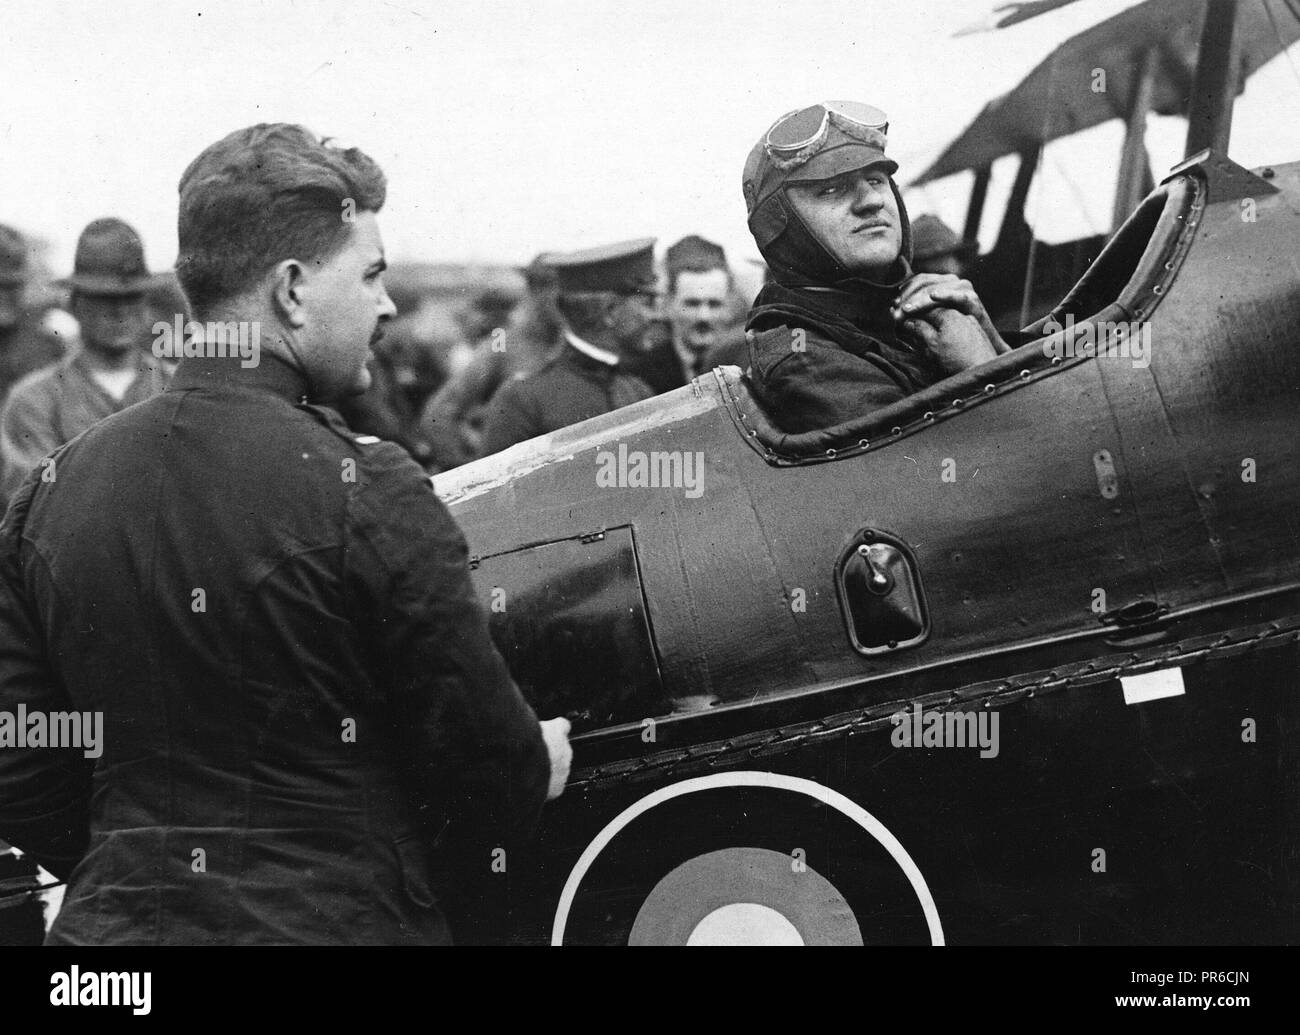 Captain Donaldson, U.S.A., at Mineola ready to 'hop off' for Canada - Stock Image